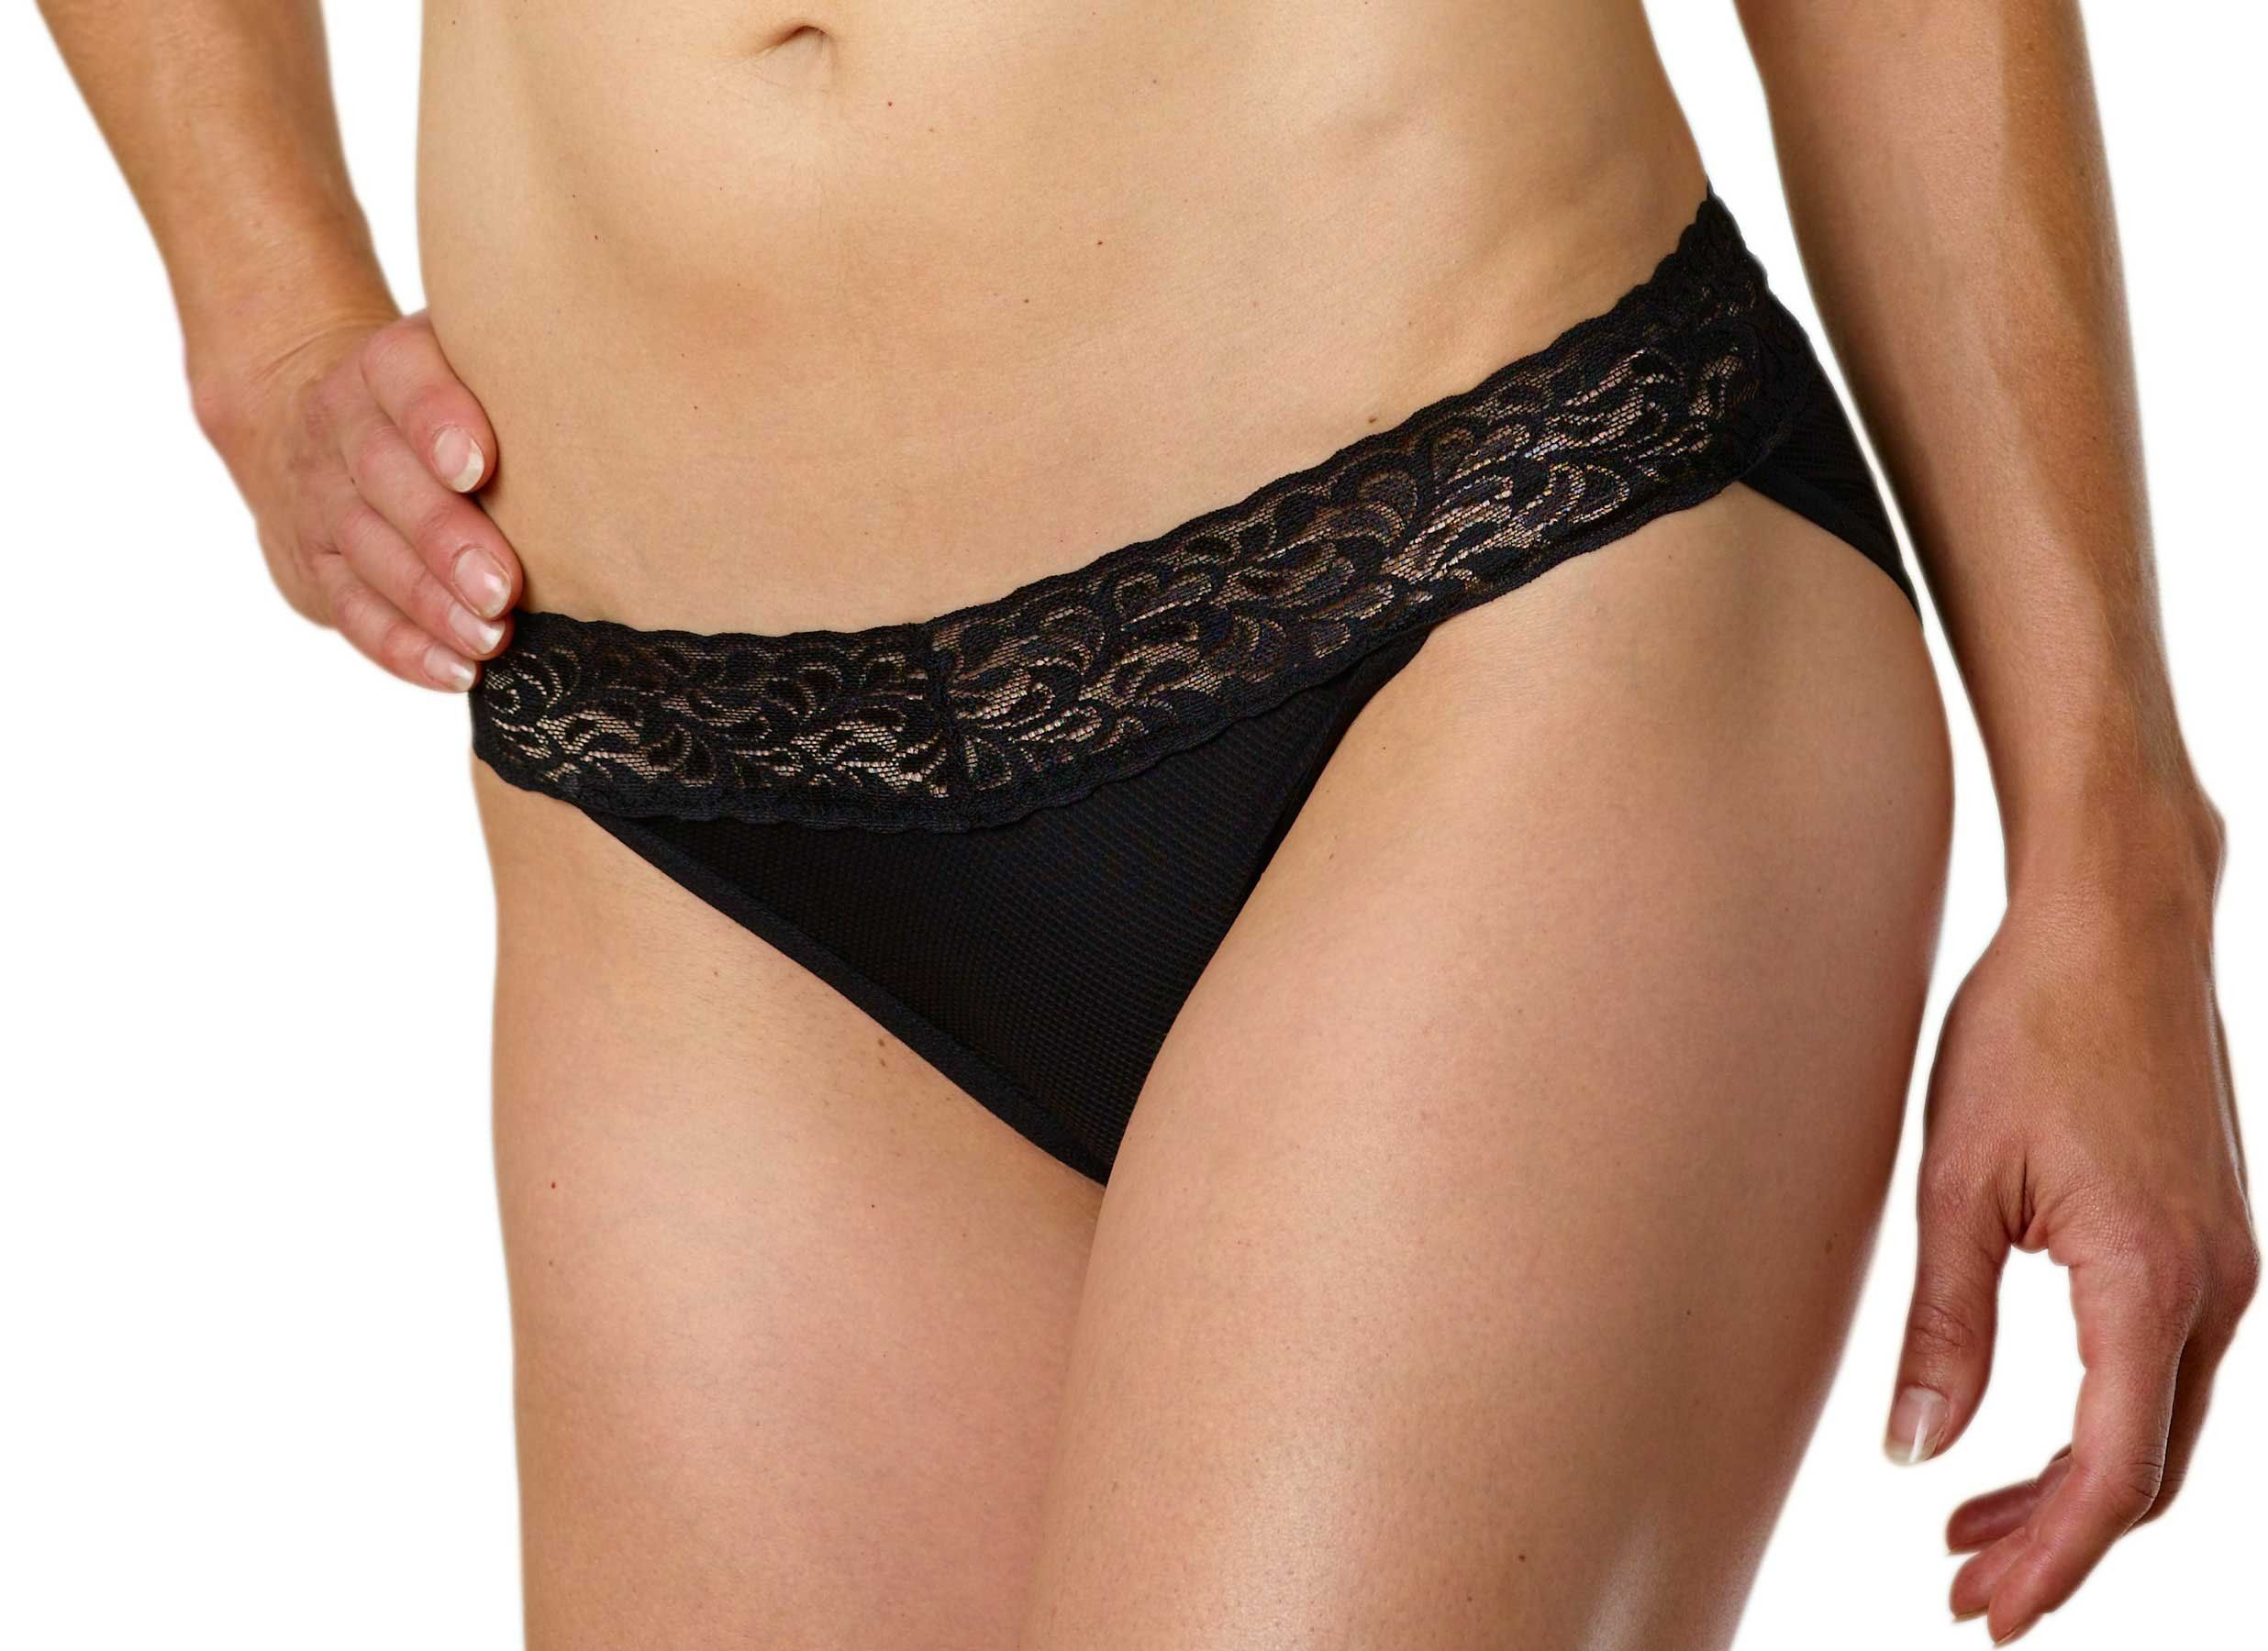 884a3939ceaf Amazon.com: ExOfficio Women's Give-N-Go Lacy Low Rise Bikini: Sports &  Outdoors